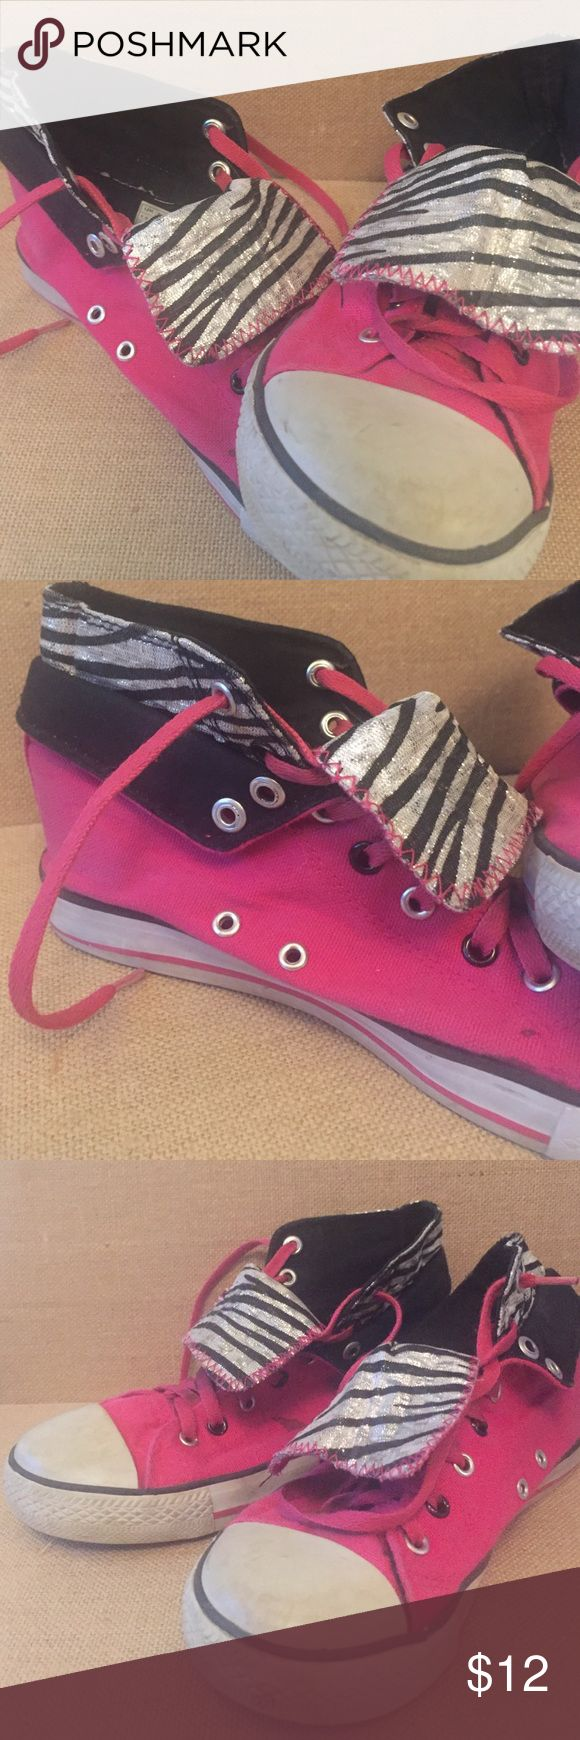 Faux Converse for Girls These are wel loved size 2 faux Converse. They have Hot pink and Sparkly Zebra accents! Your daughter will love them! Converse Shoes Sneakers